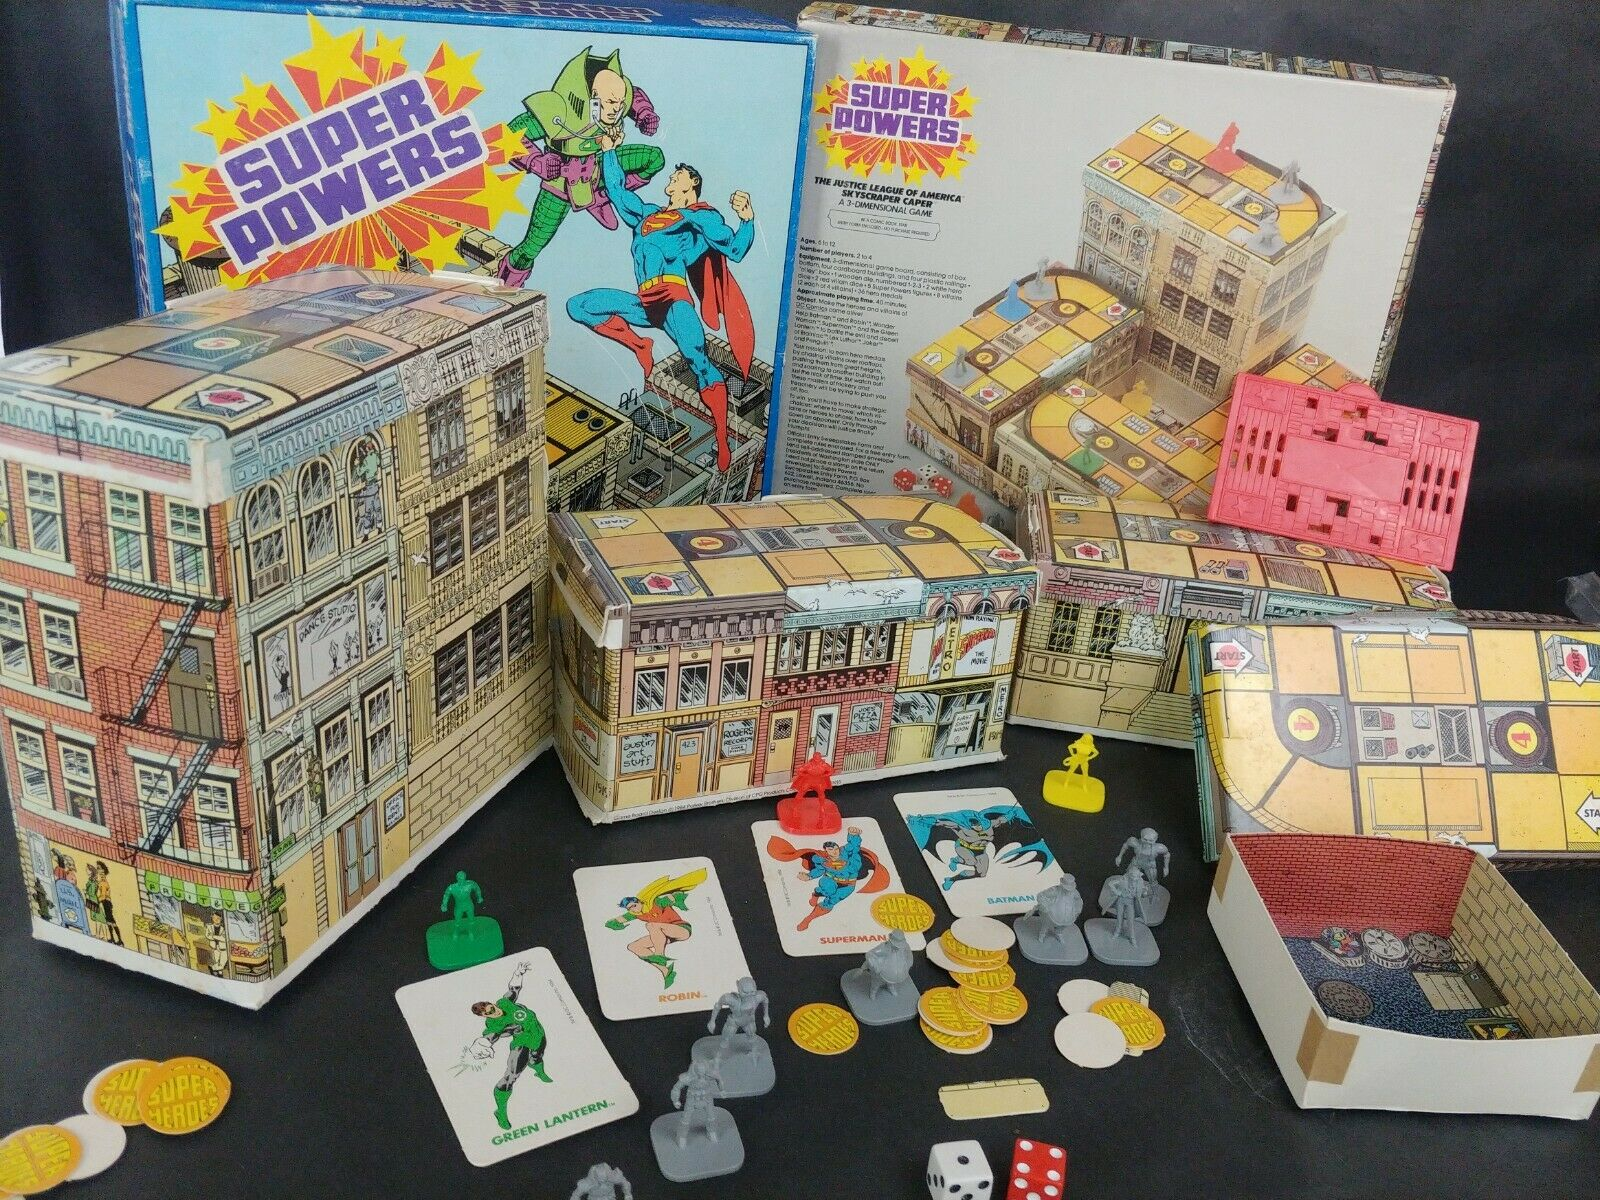 Super energias The Justice League America  cieloscraper Caper 3 Dimensional VTG gioco  promozioni